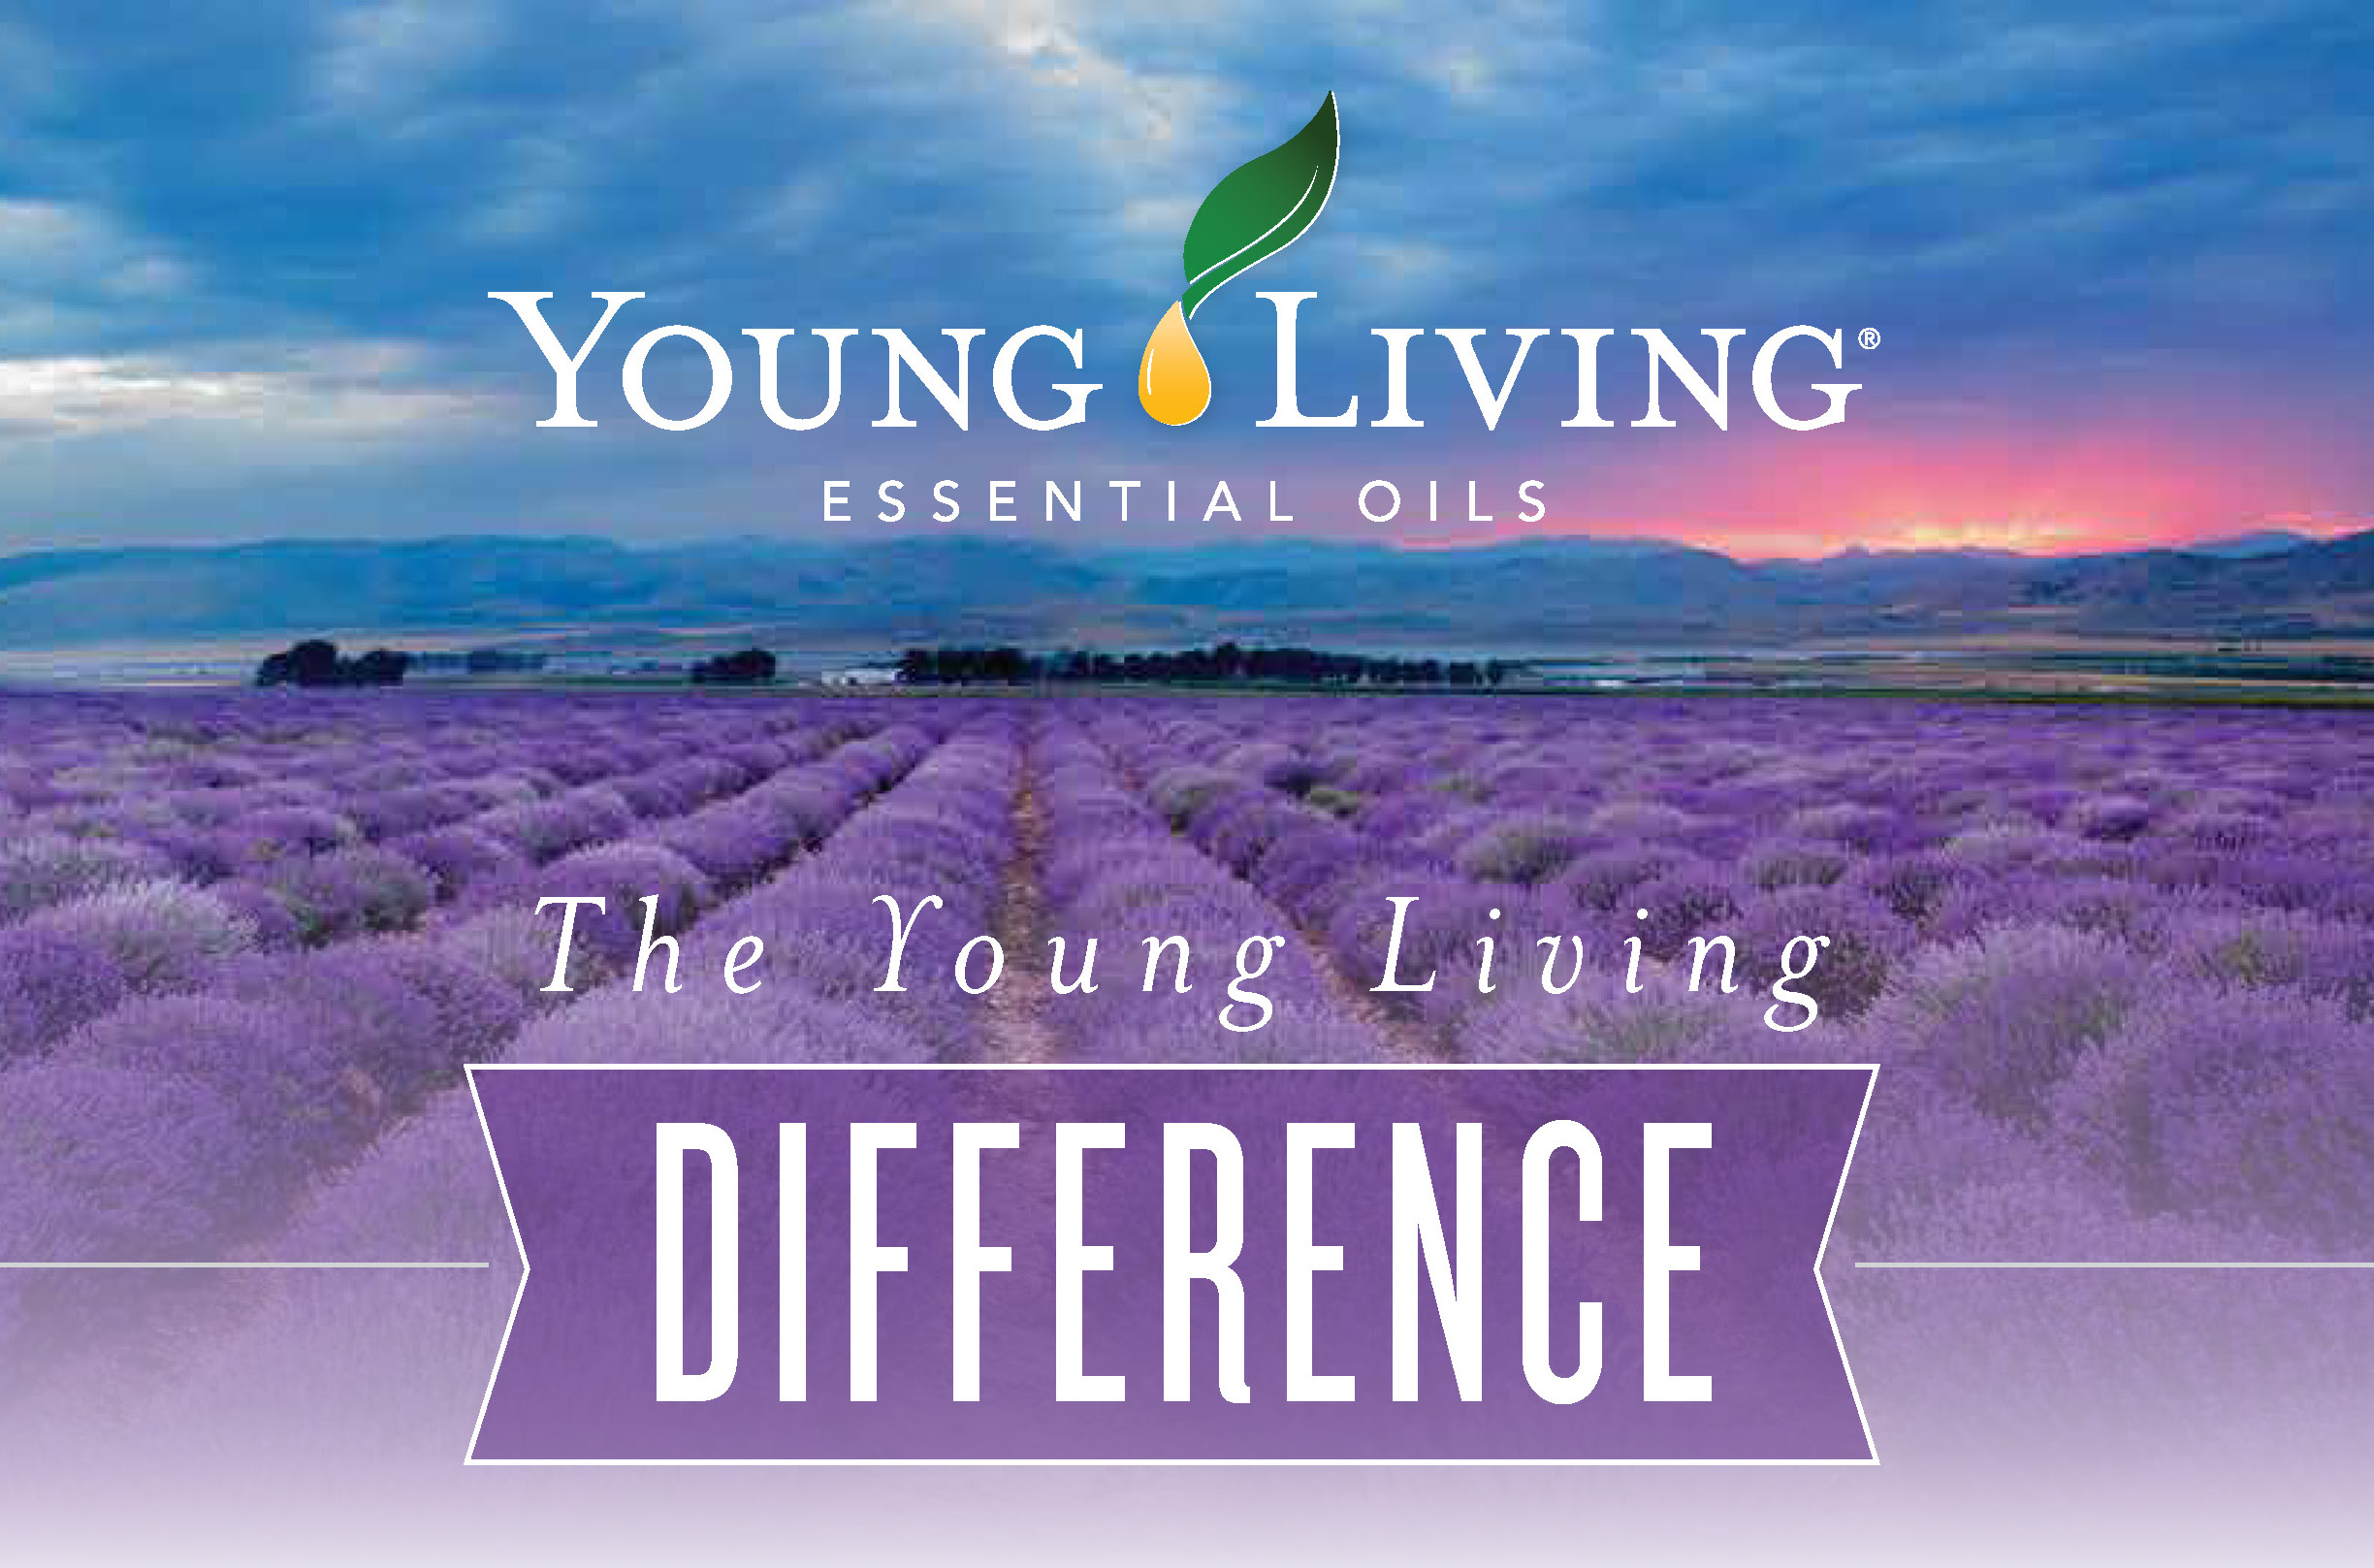 the-young-living-difference.jpg